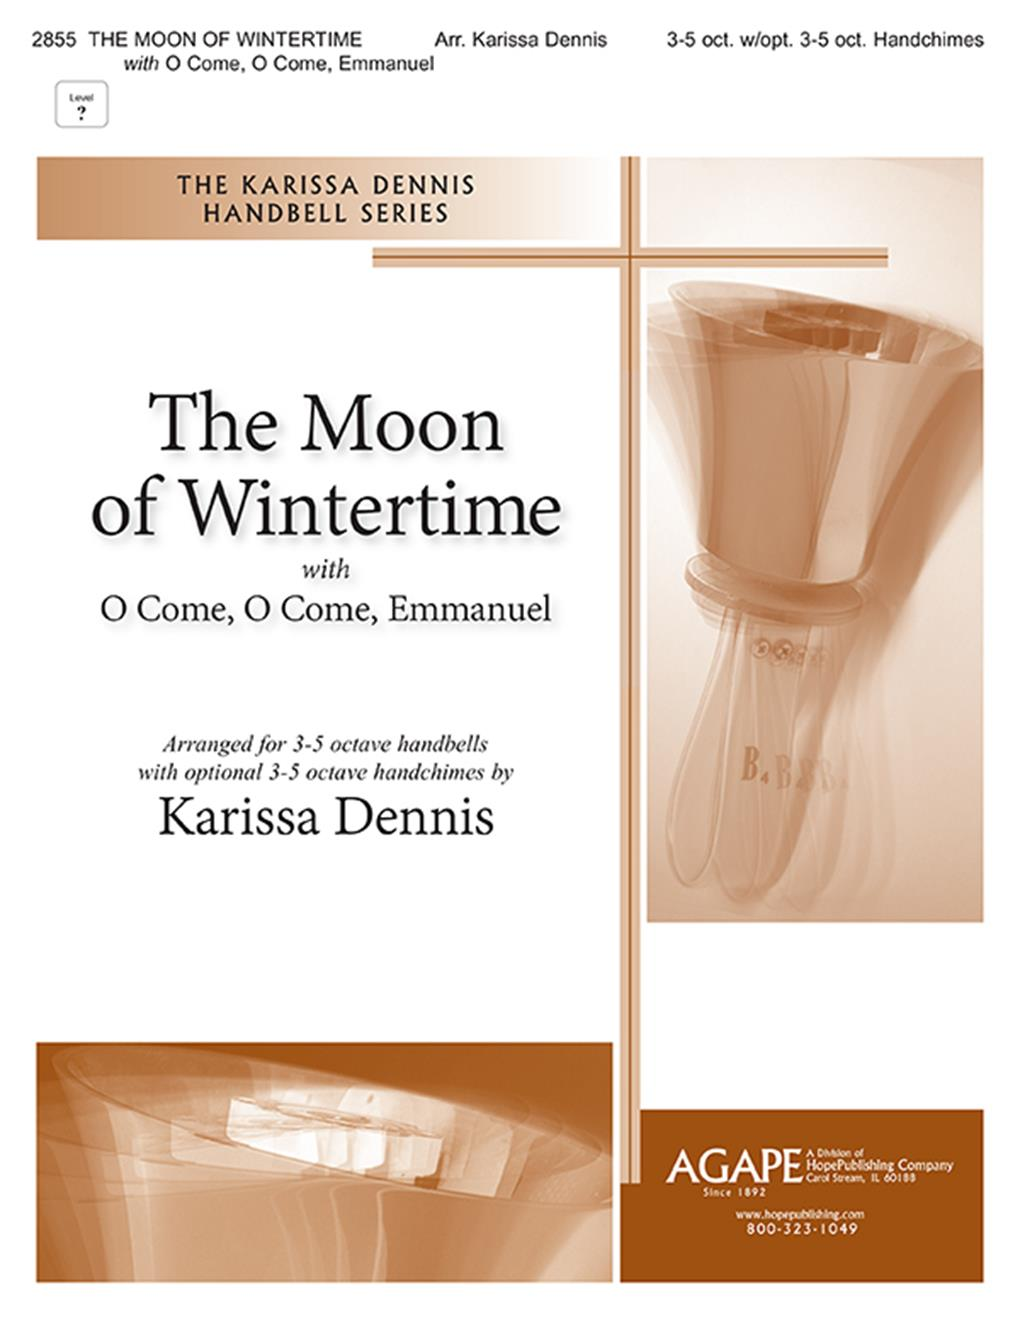 The Moon of Wintertime - 3-5 oct. Cover Image